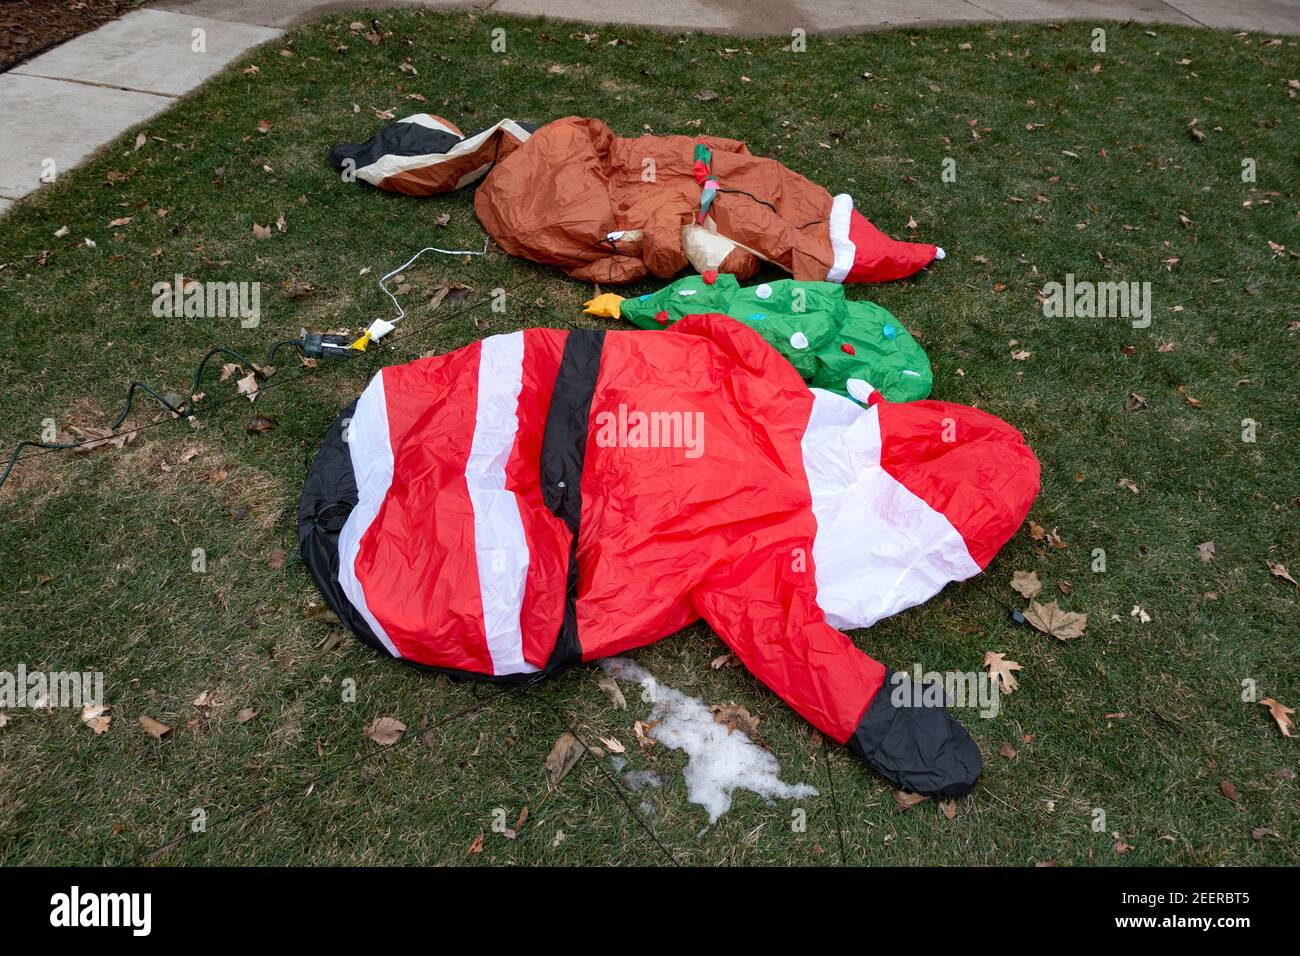 Deflated Christmas decorations in the front yard of a home. St Paul Minnesota MN USA Stock Photo